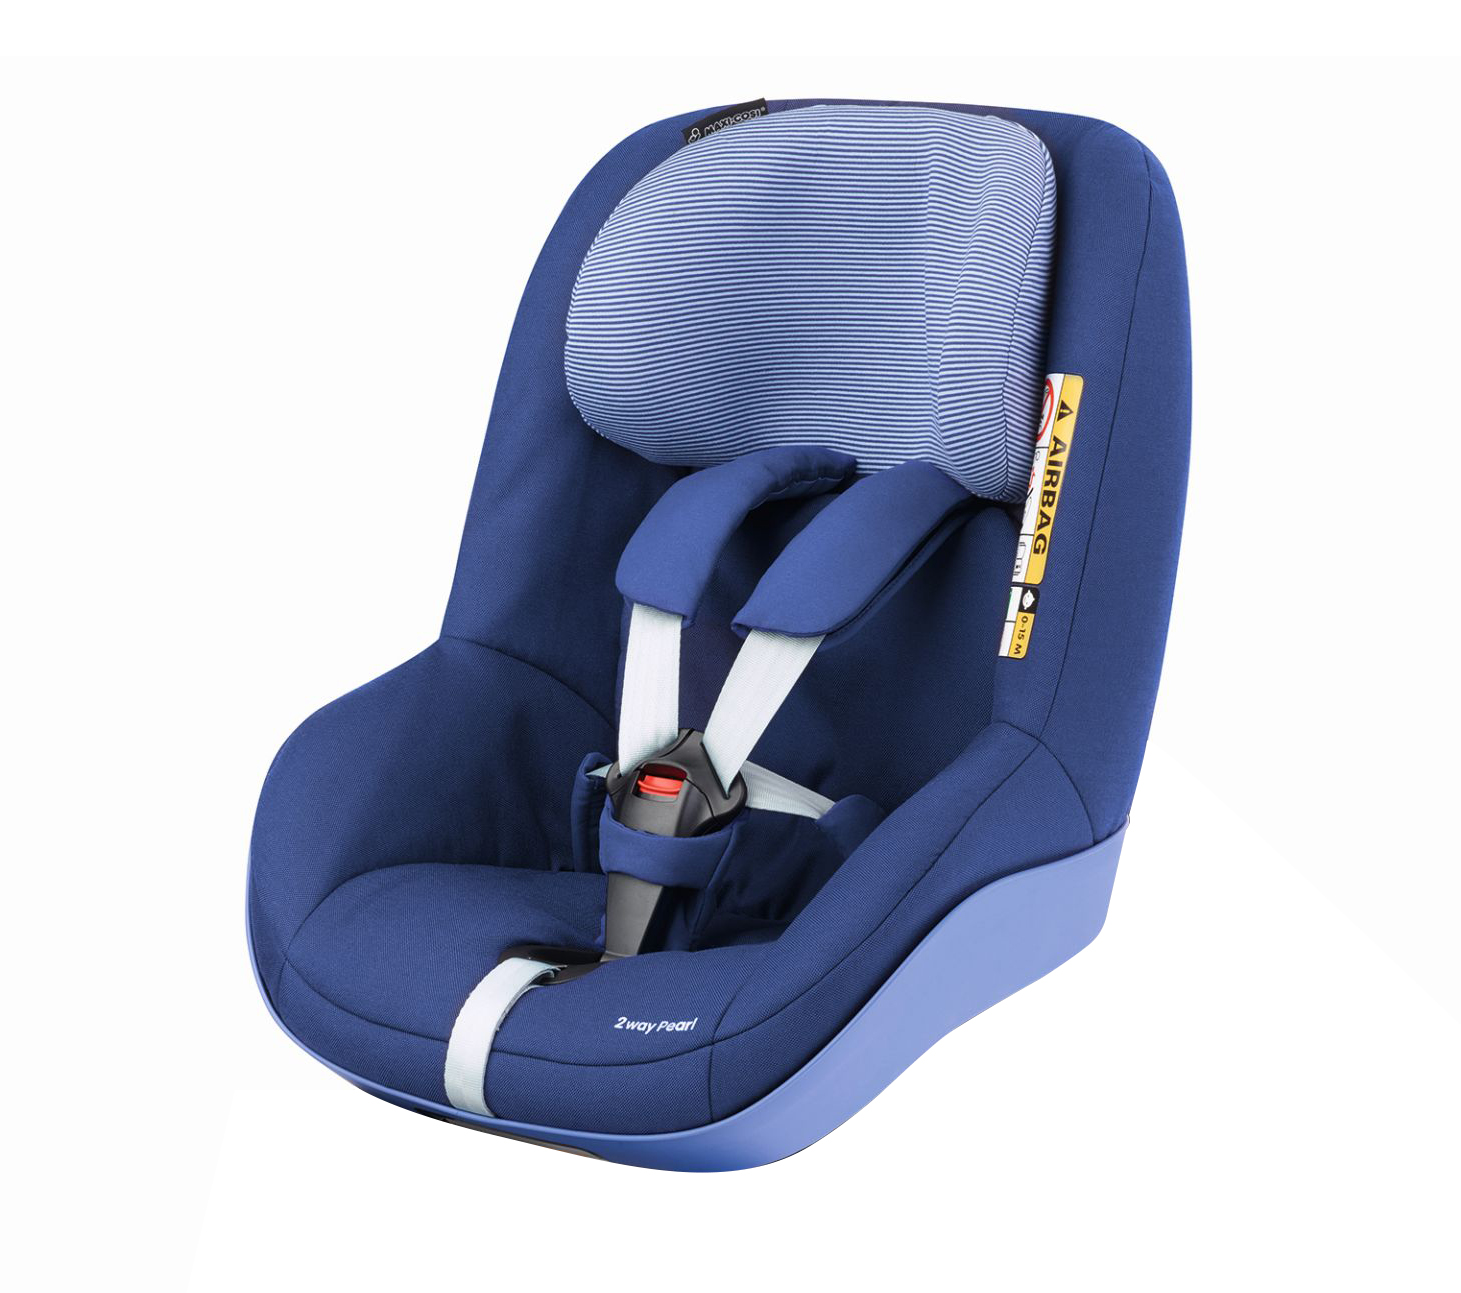 Si ge d enfant maxi cosi 2way pearl 2017 river blue for Siege enfant